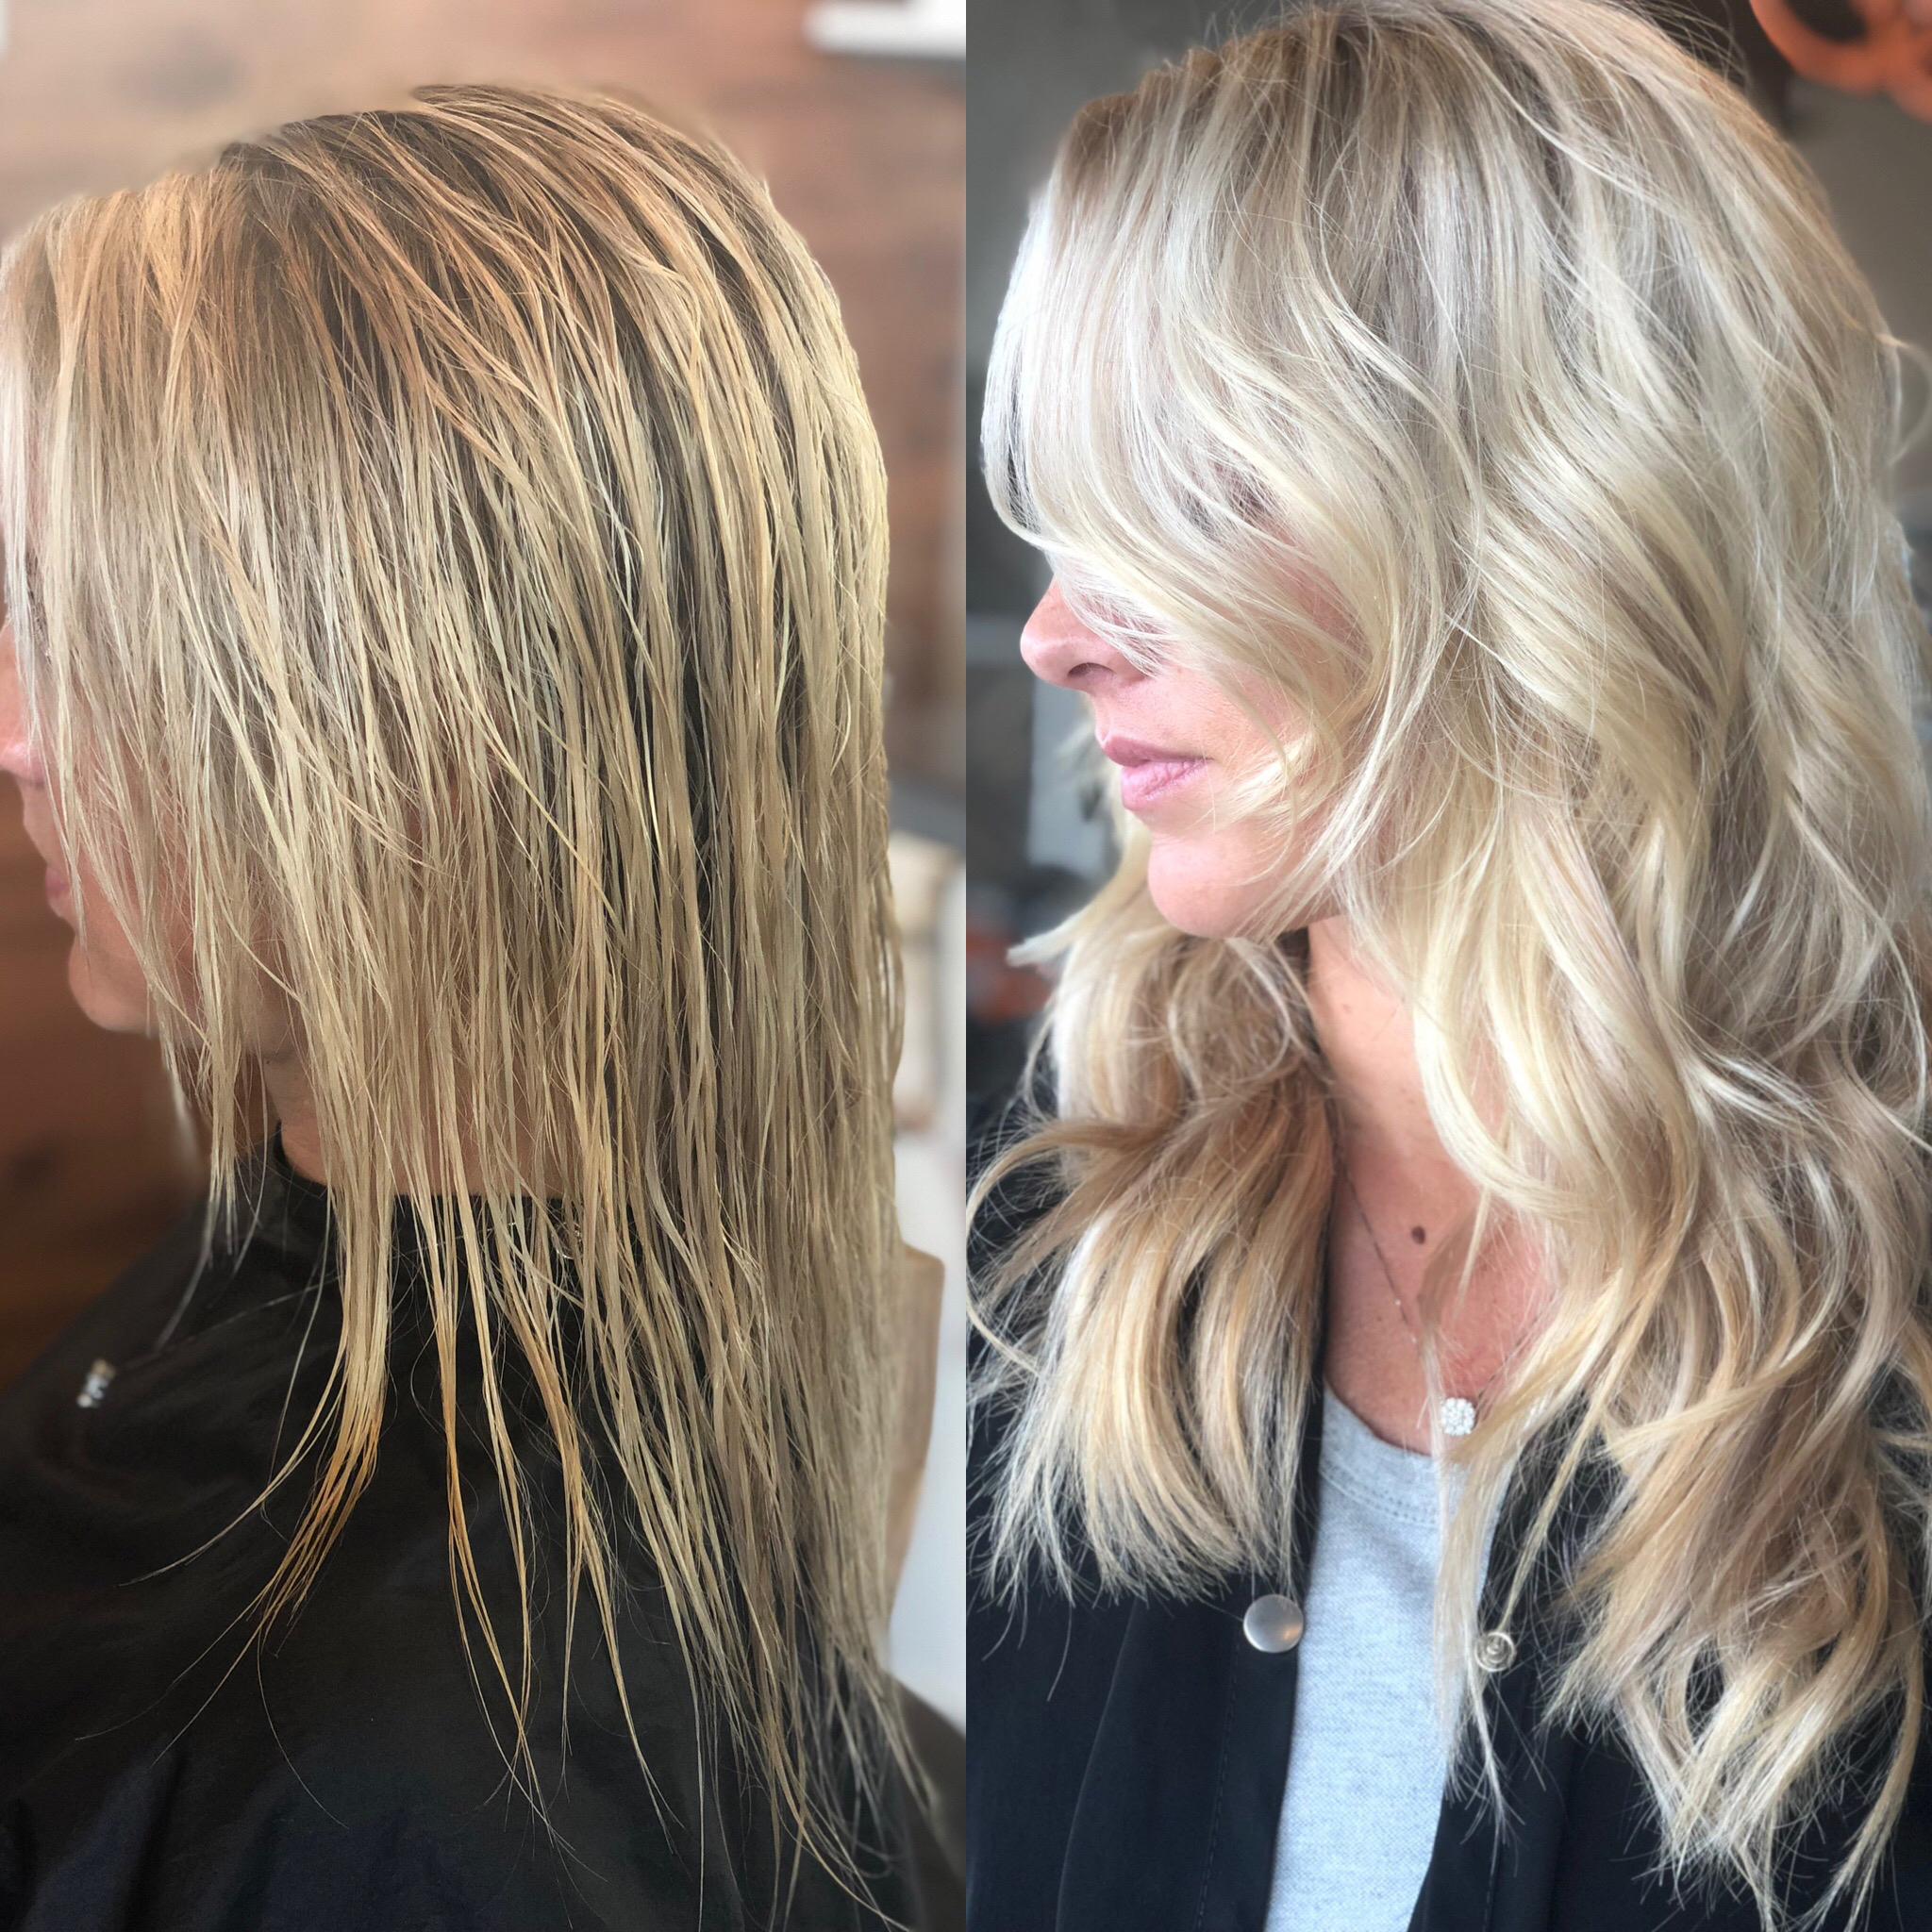 Natural Beaded Rows Kansas City Stylist Transformation 2